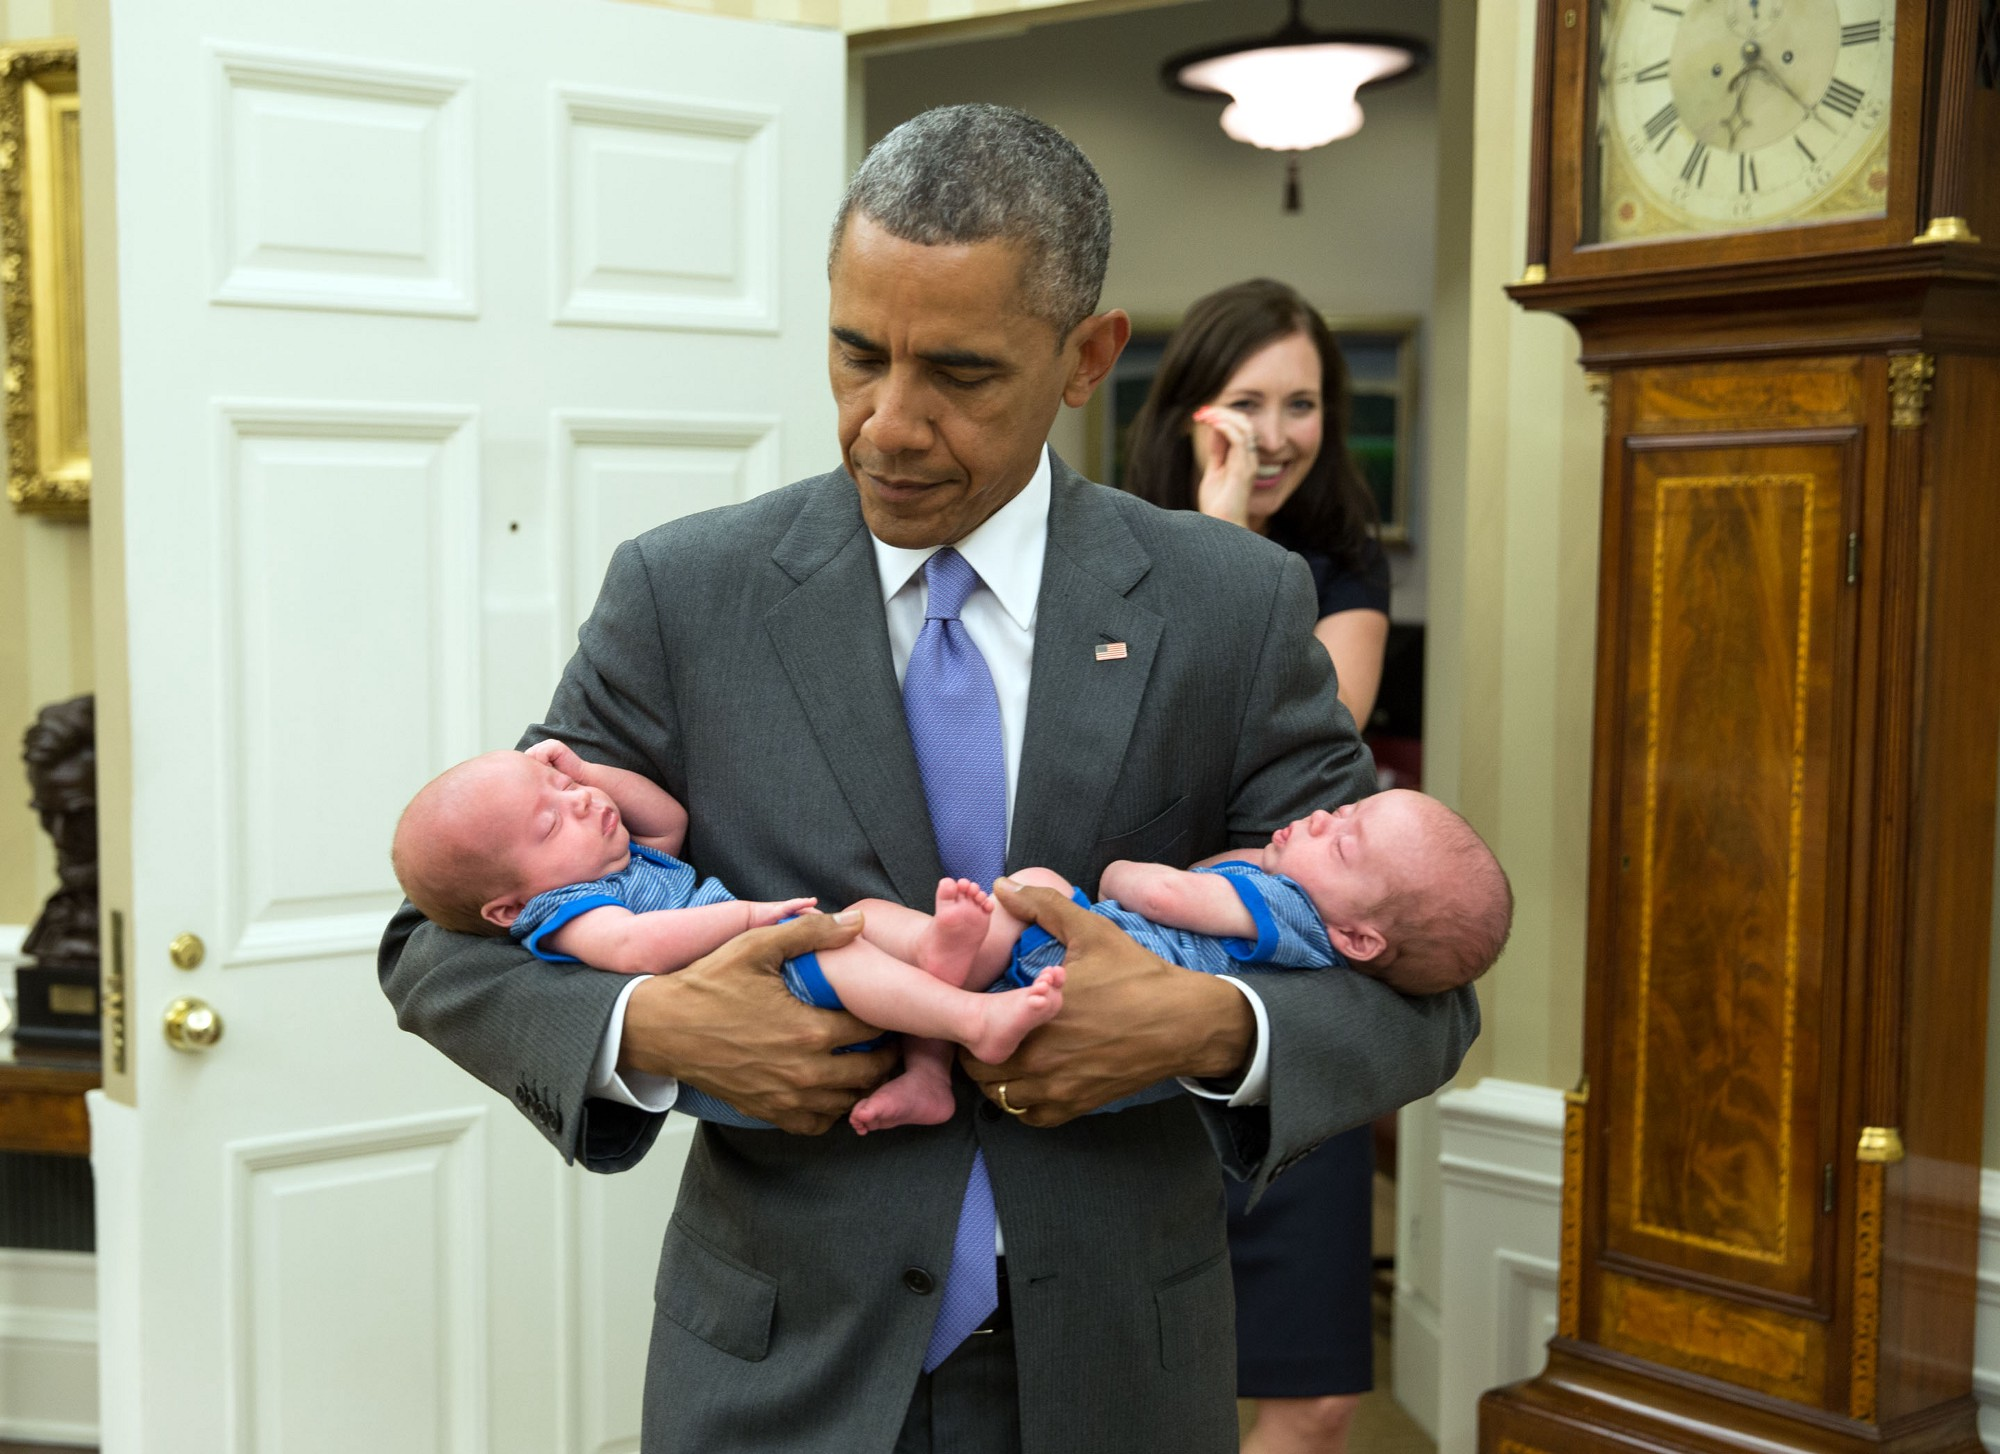 """The President carries the twin boys of Katie Beirne Fallon, Director of Legislative Affairs, into the Oval Office just a few months after they were born."" (Official White House Photo by Pete Souza)"